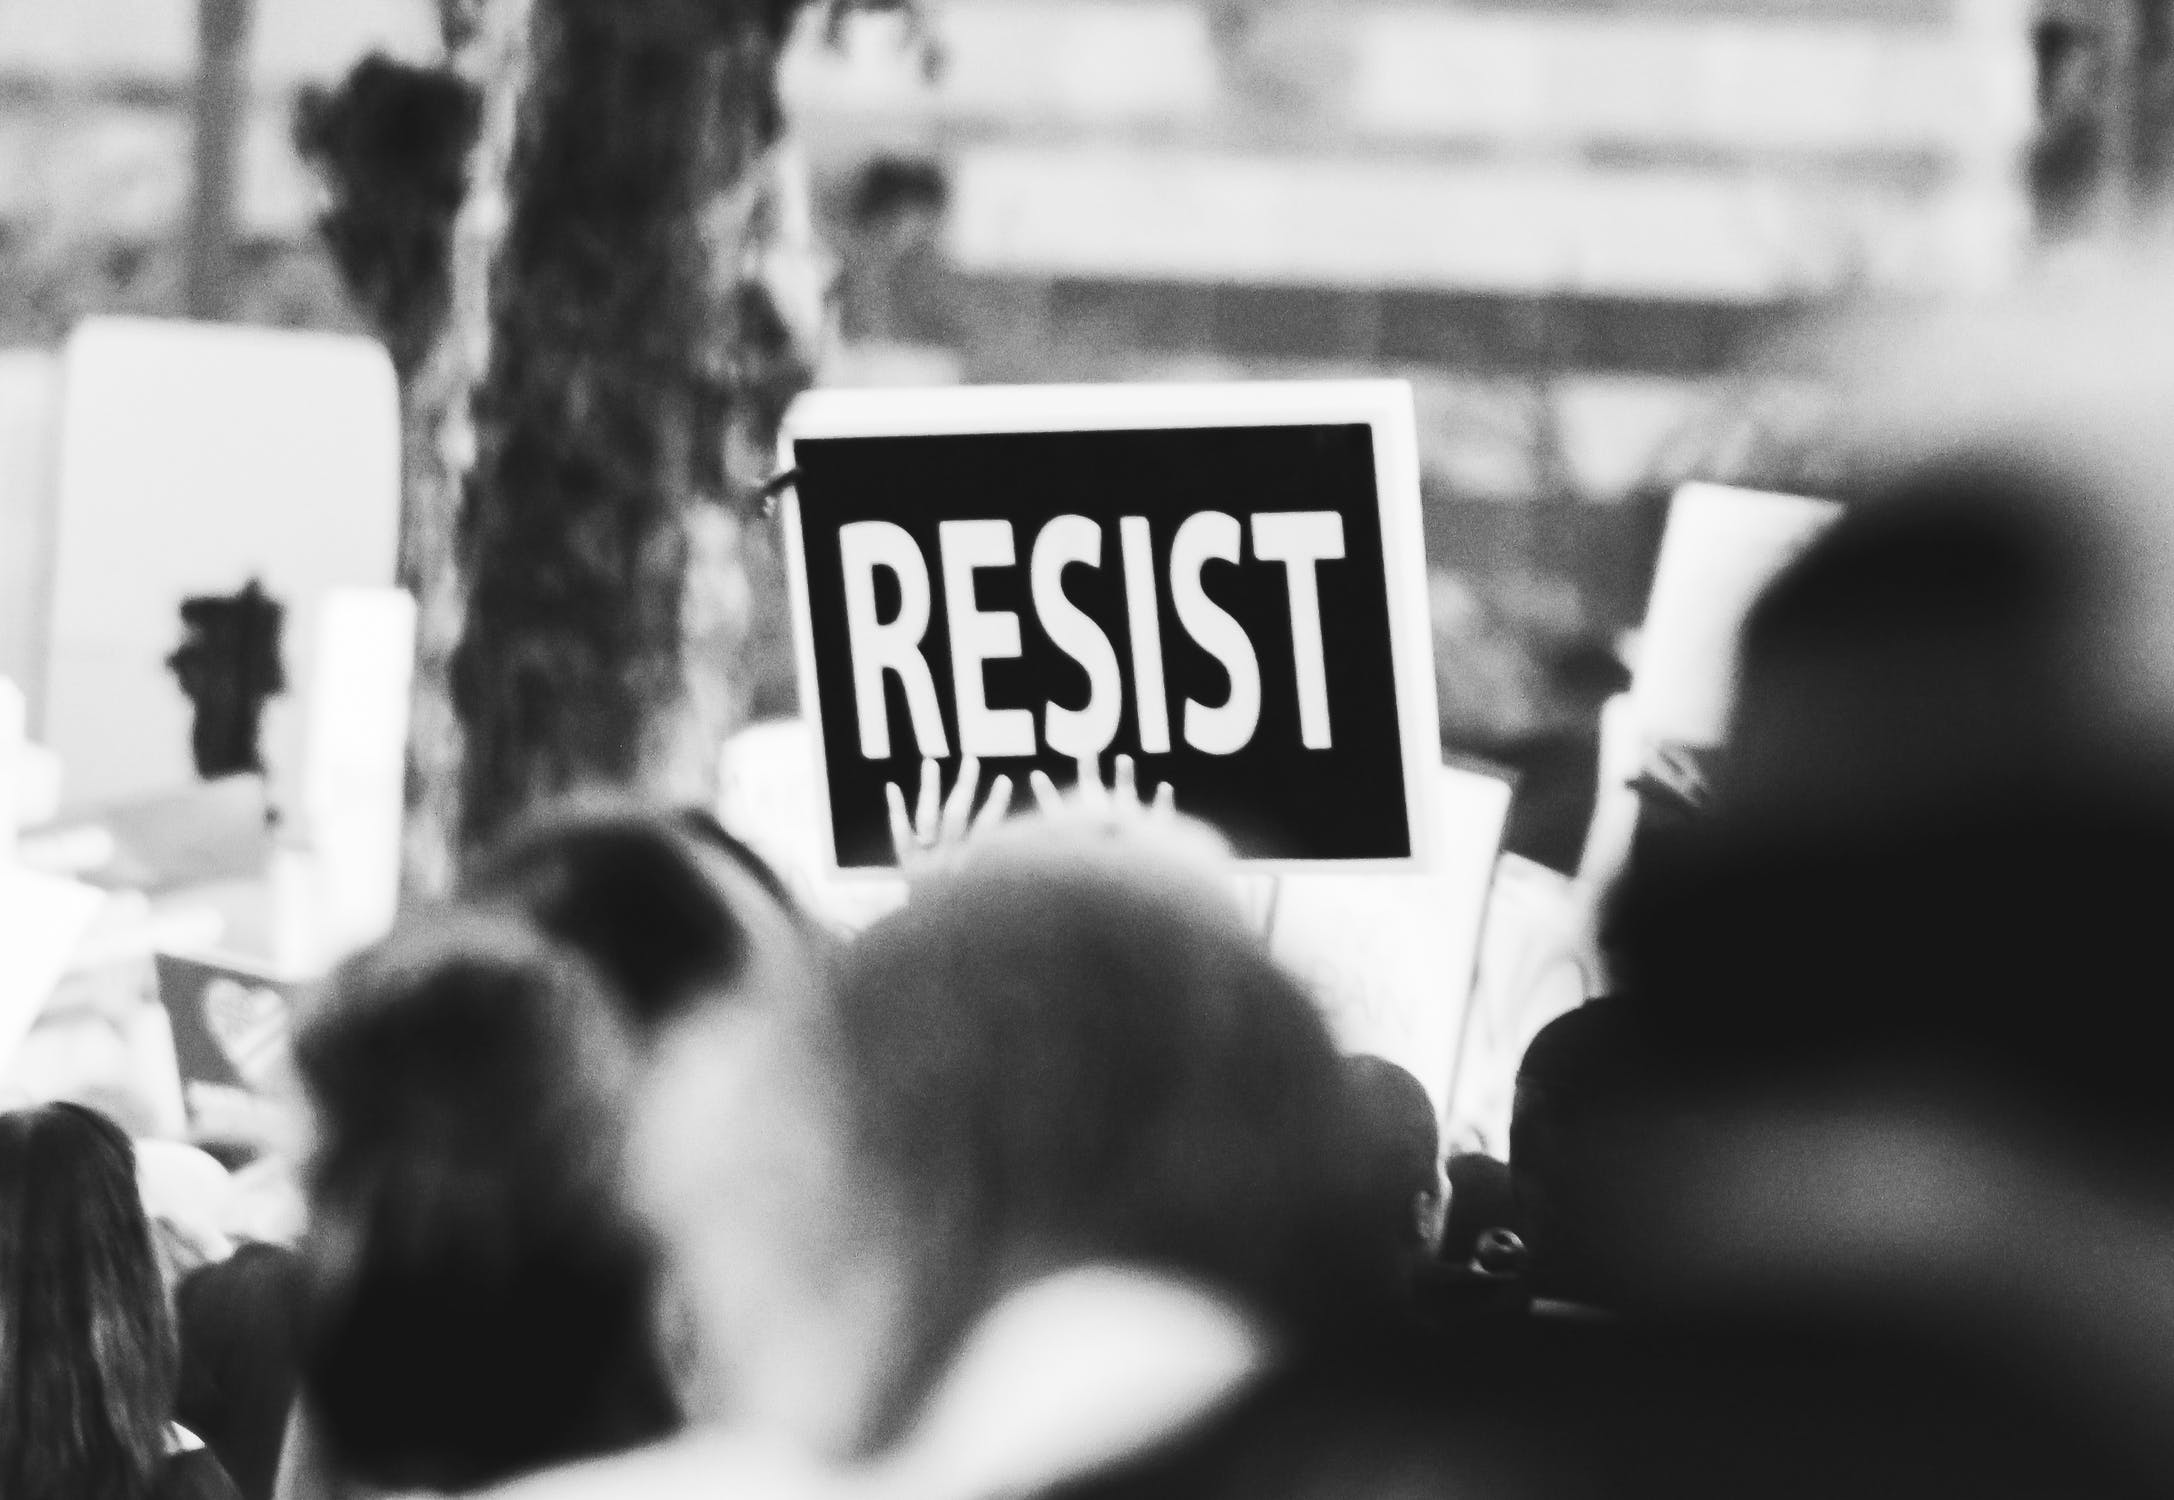 New History Channel Documentary Reflects on the Legacy of American Protest